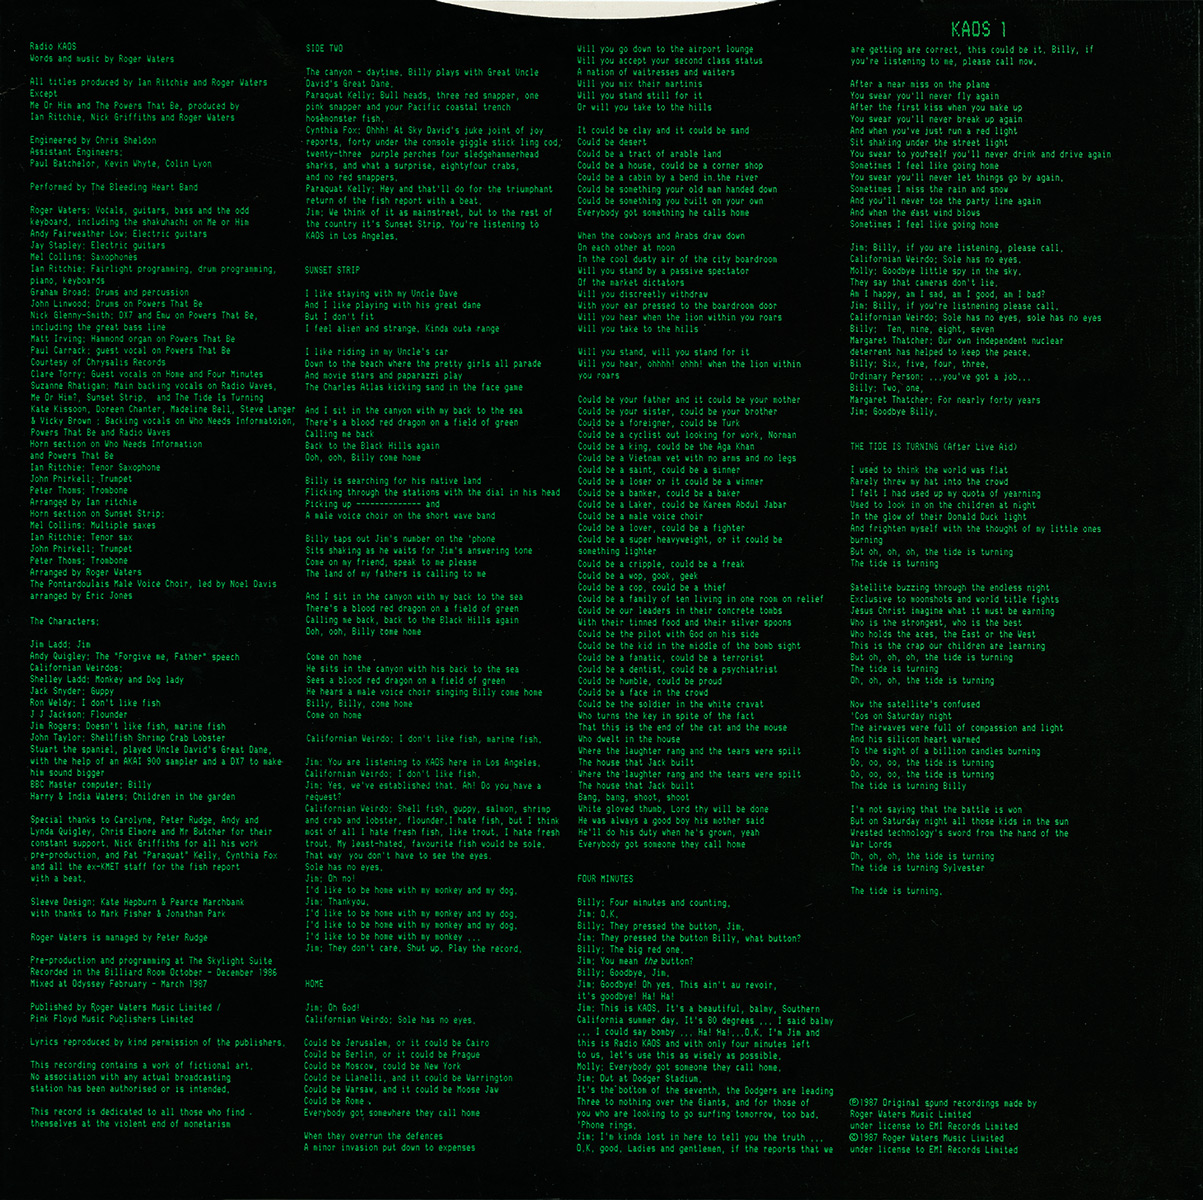 Pink Floyd Archives U K Roger Waters Lp Discography